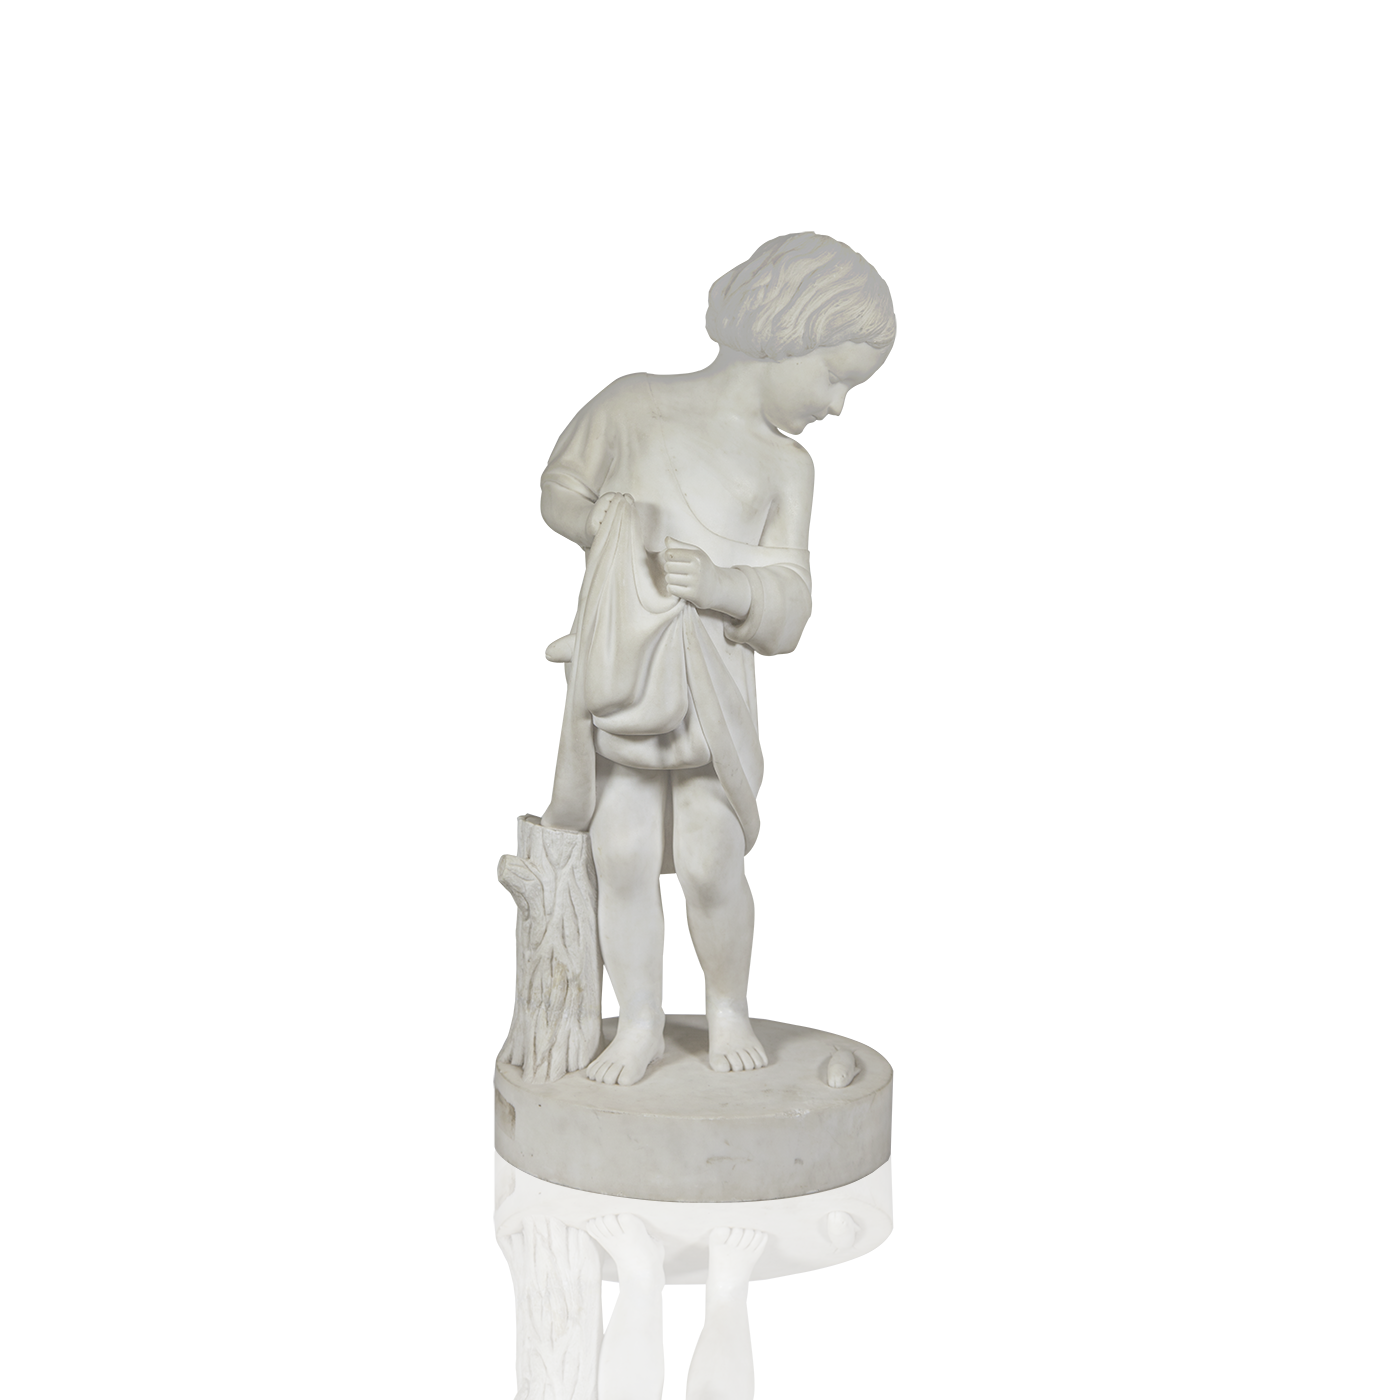 Marble statue png. American school classical sculpture